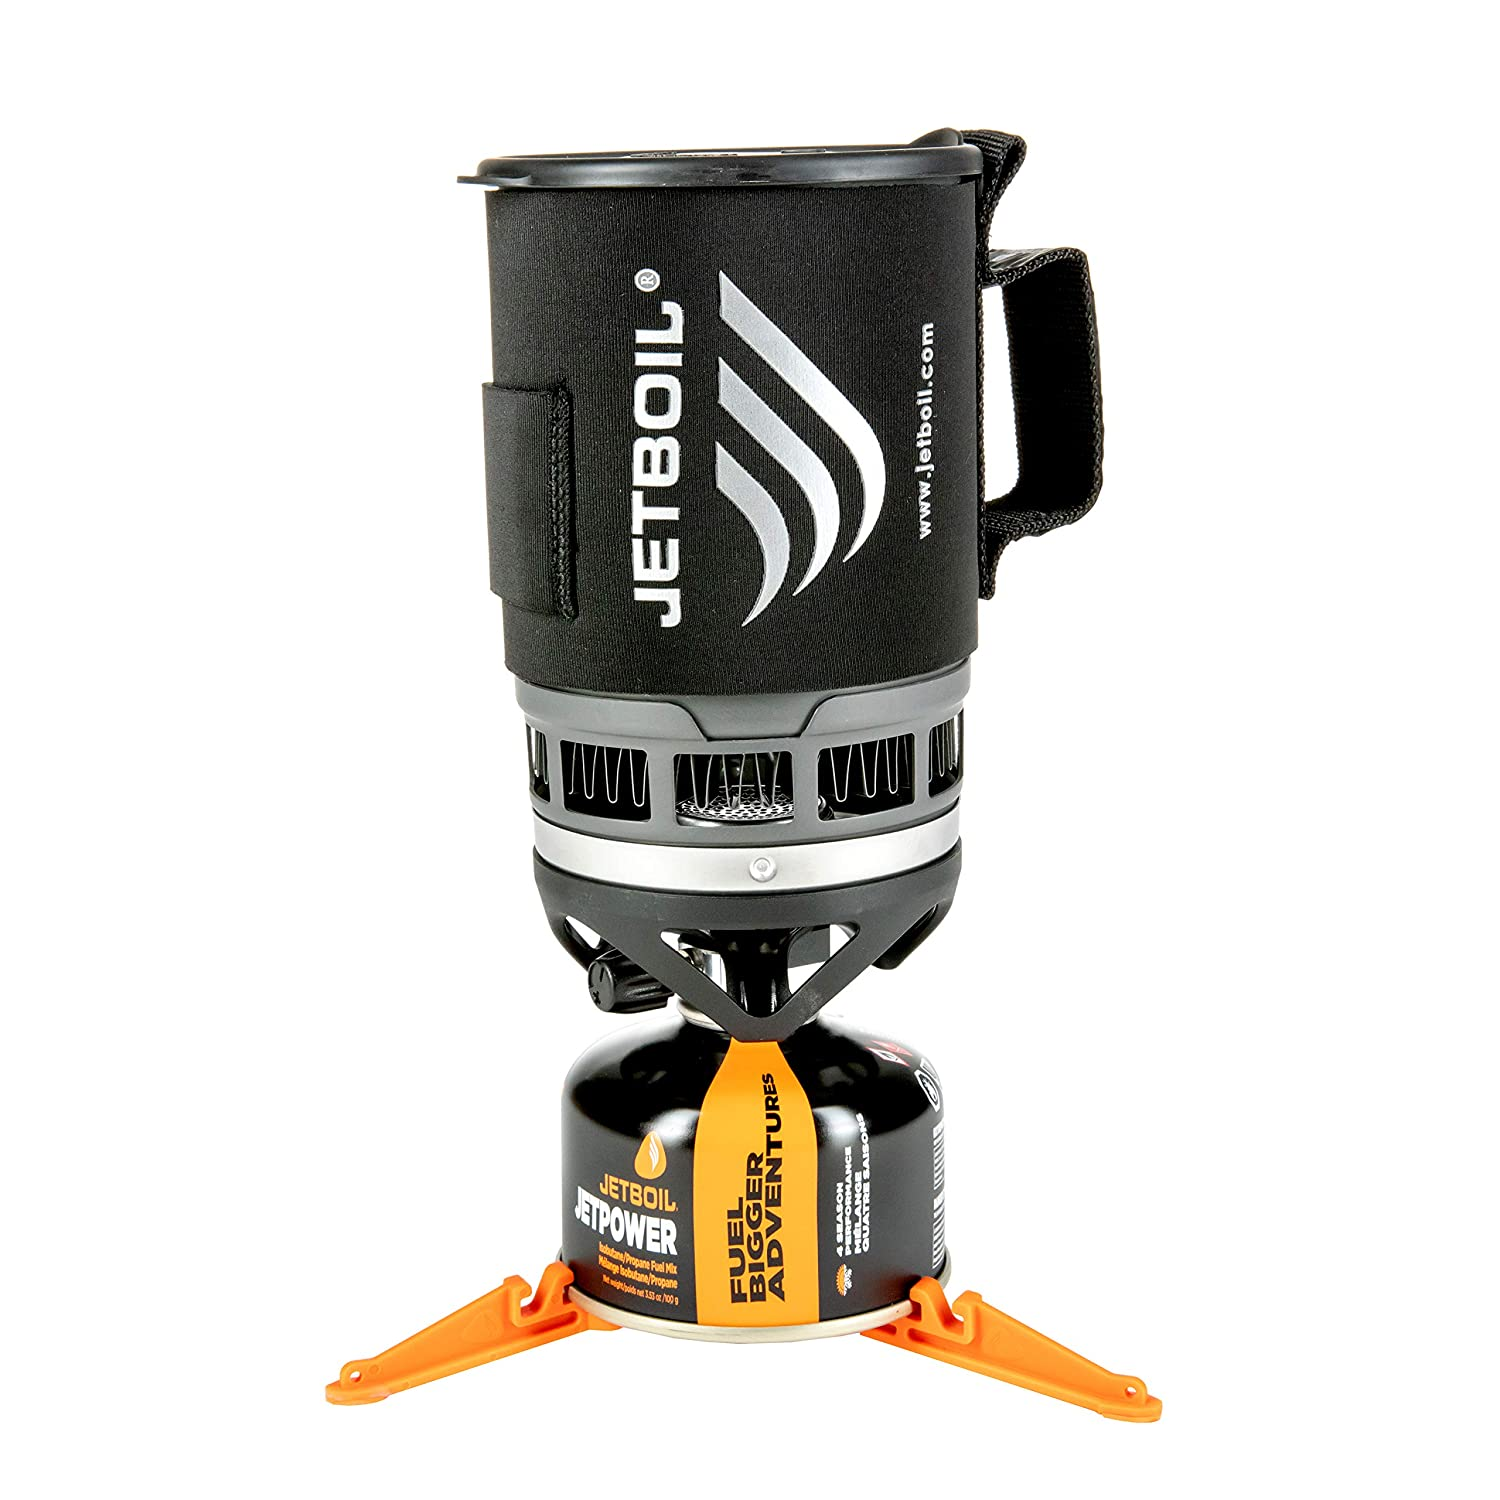 Jetboil Zip Camping Stove Cooking System